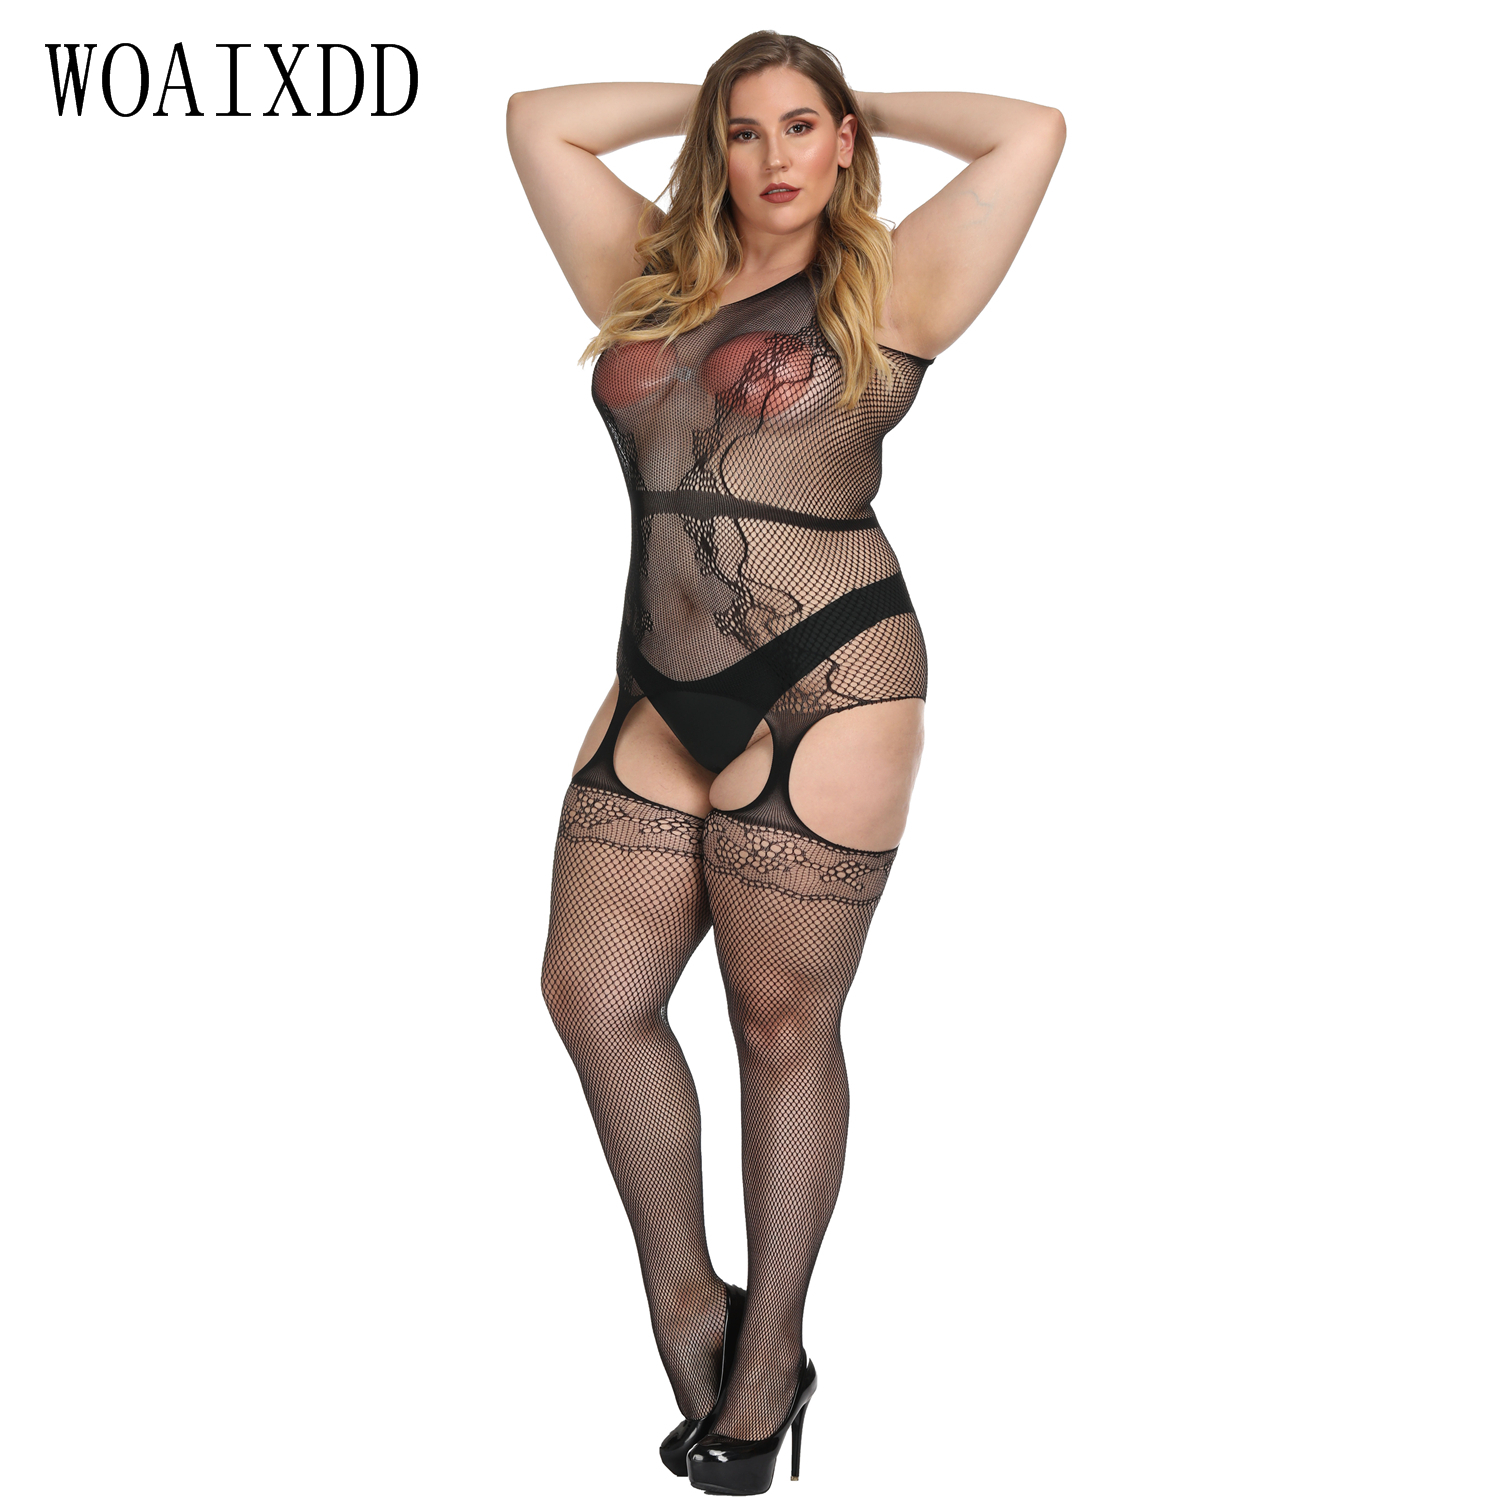 8 Styles XXXL Plus Size Bodysuits Women Erotic Sexy Lingerie Hot Bodystocking Costumes Open Crotch Babydolls Erotic Underwear